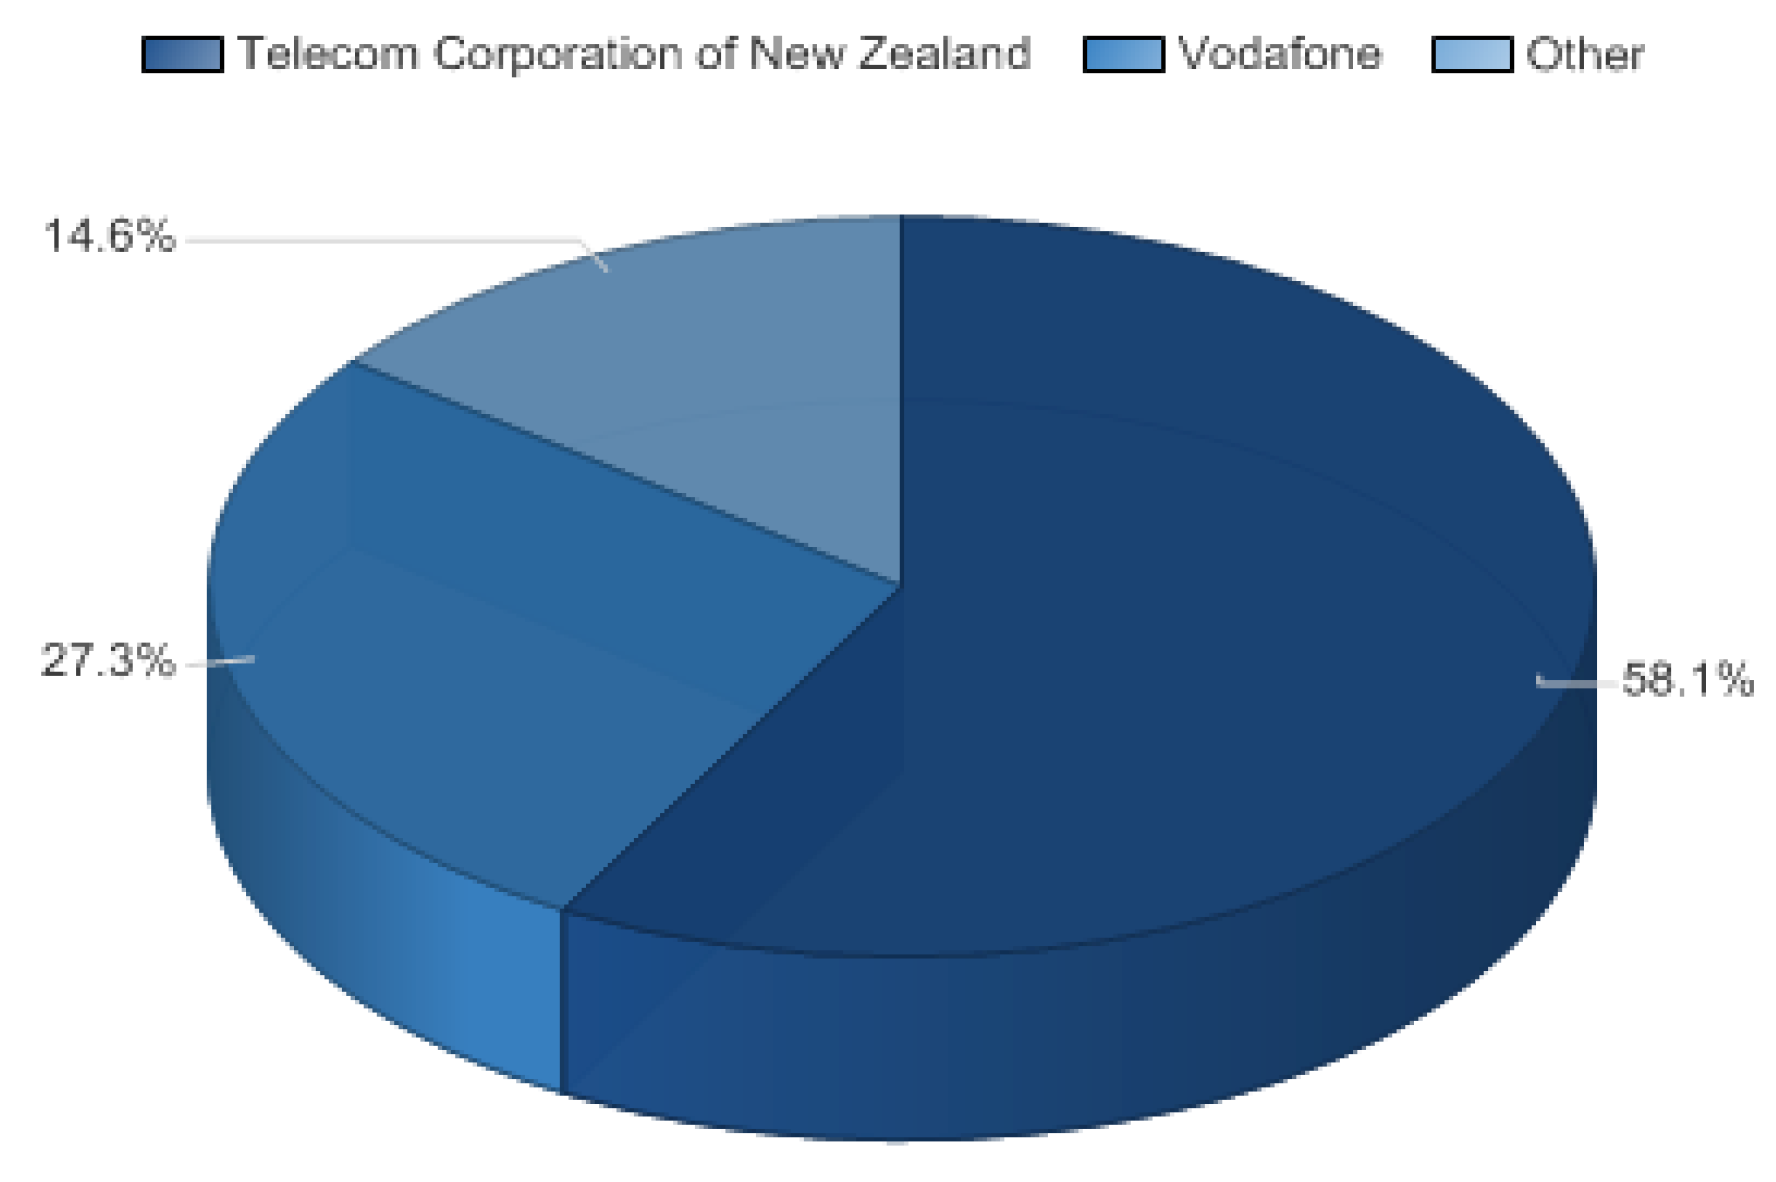 Fixed-line telecommunications market share in NZ